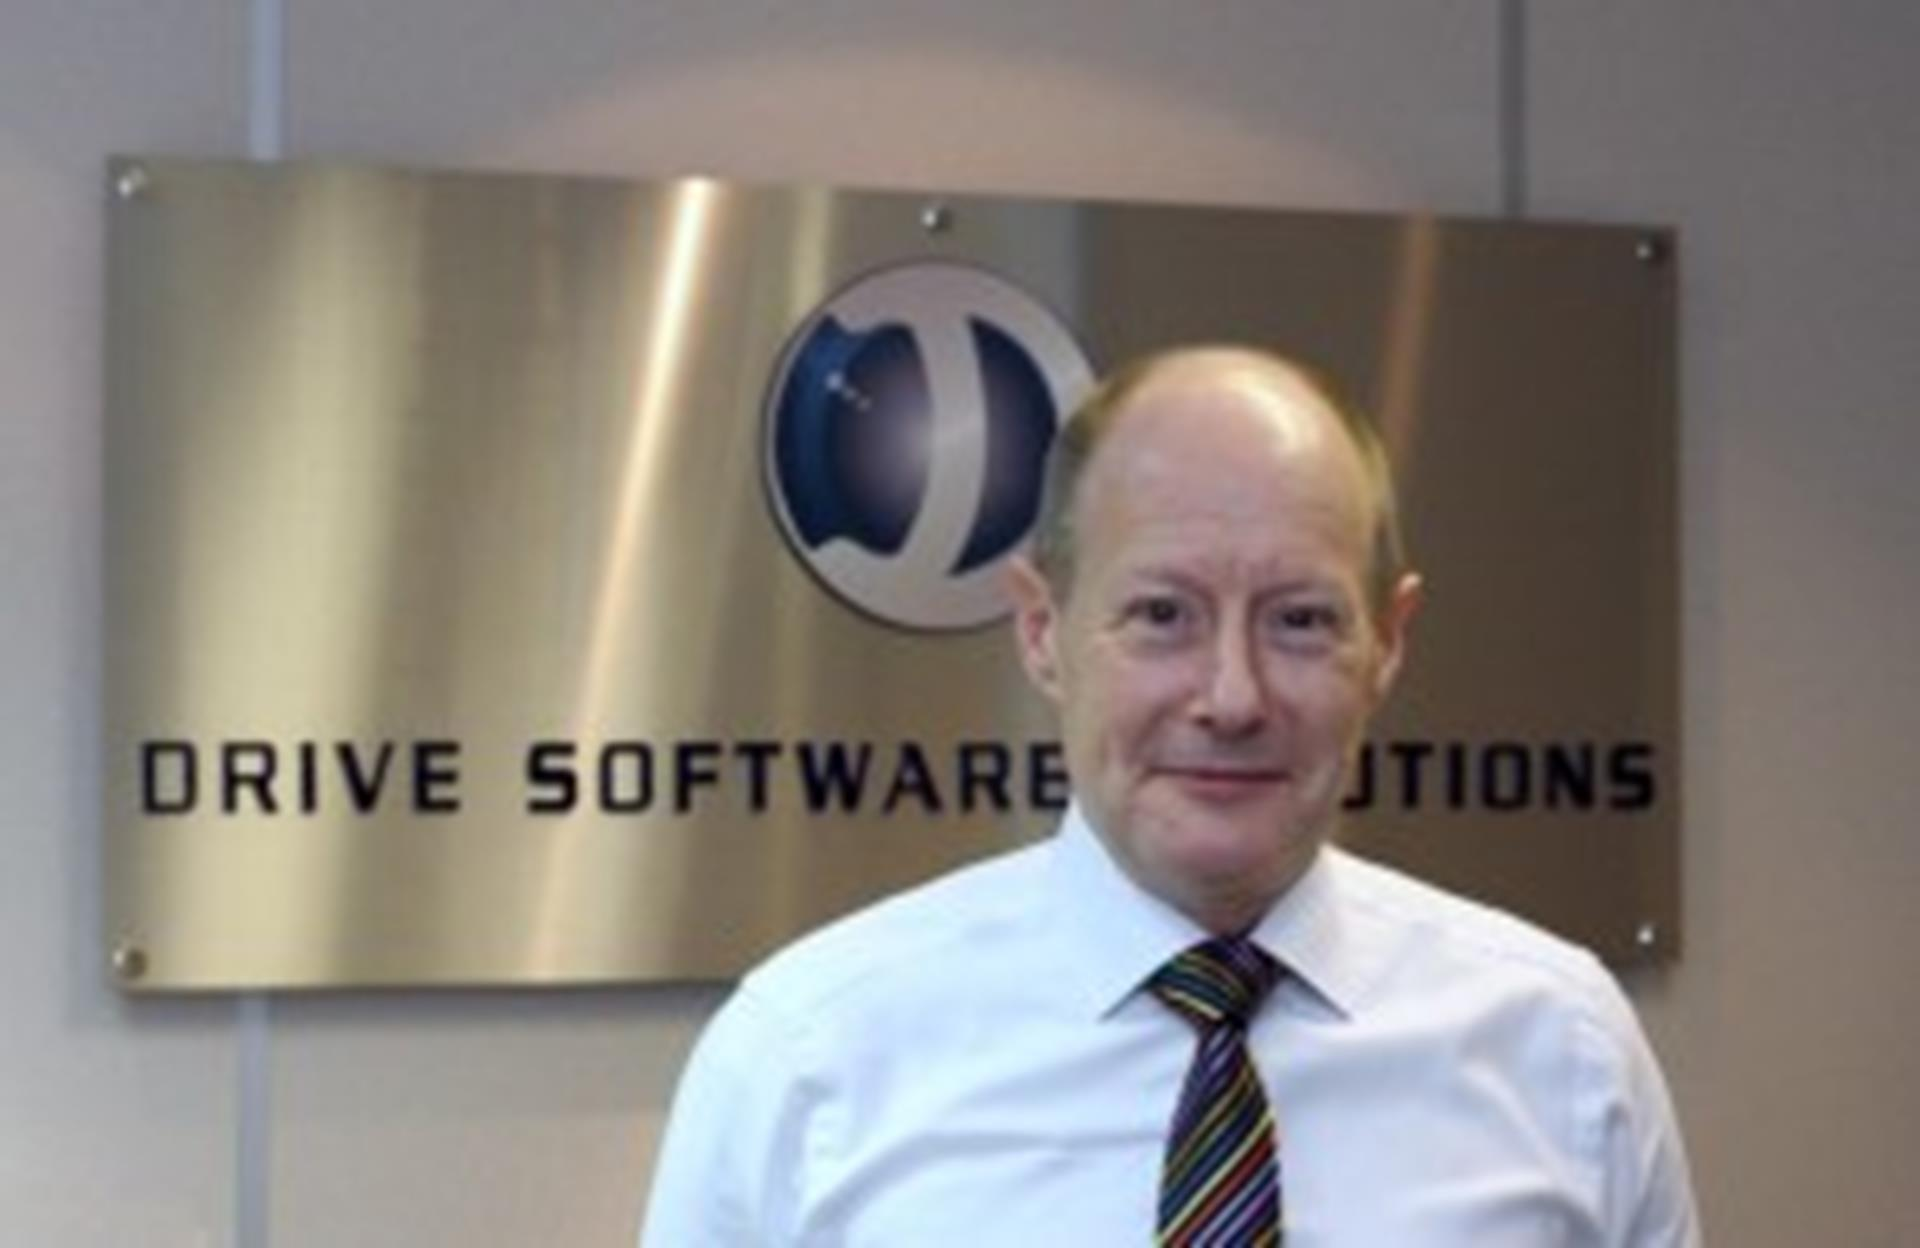 Alan Leakey, Development Director, Drive Software Solutions